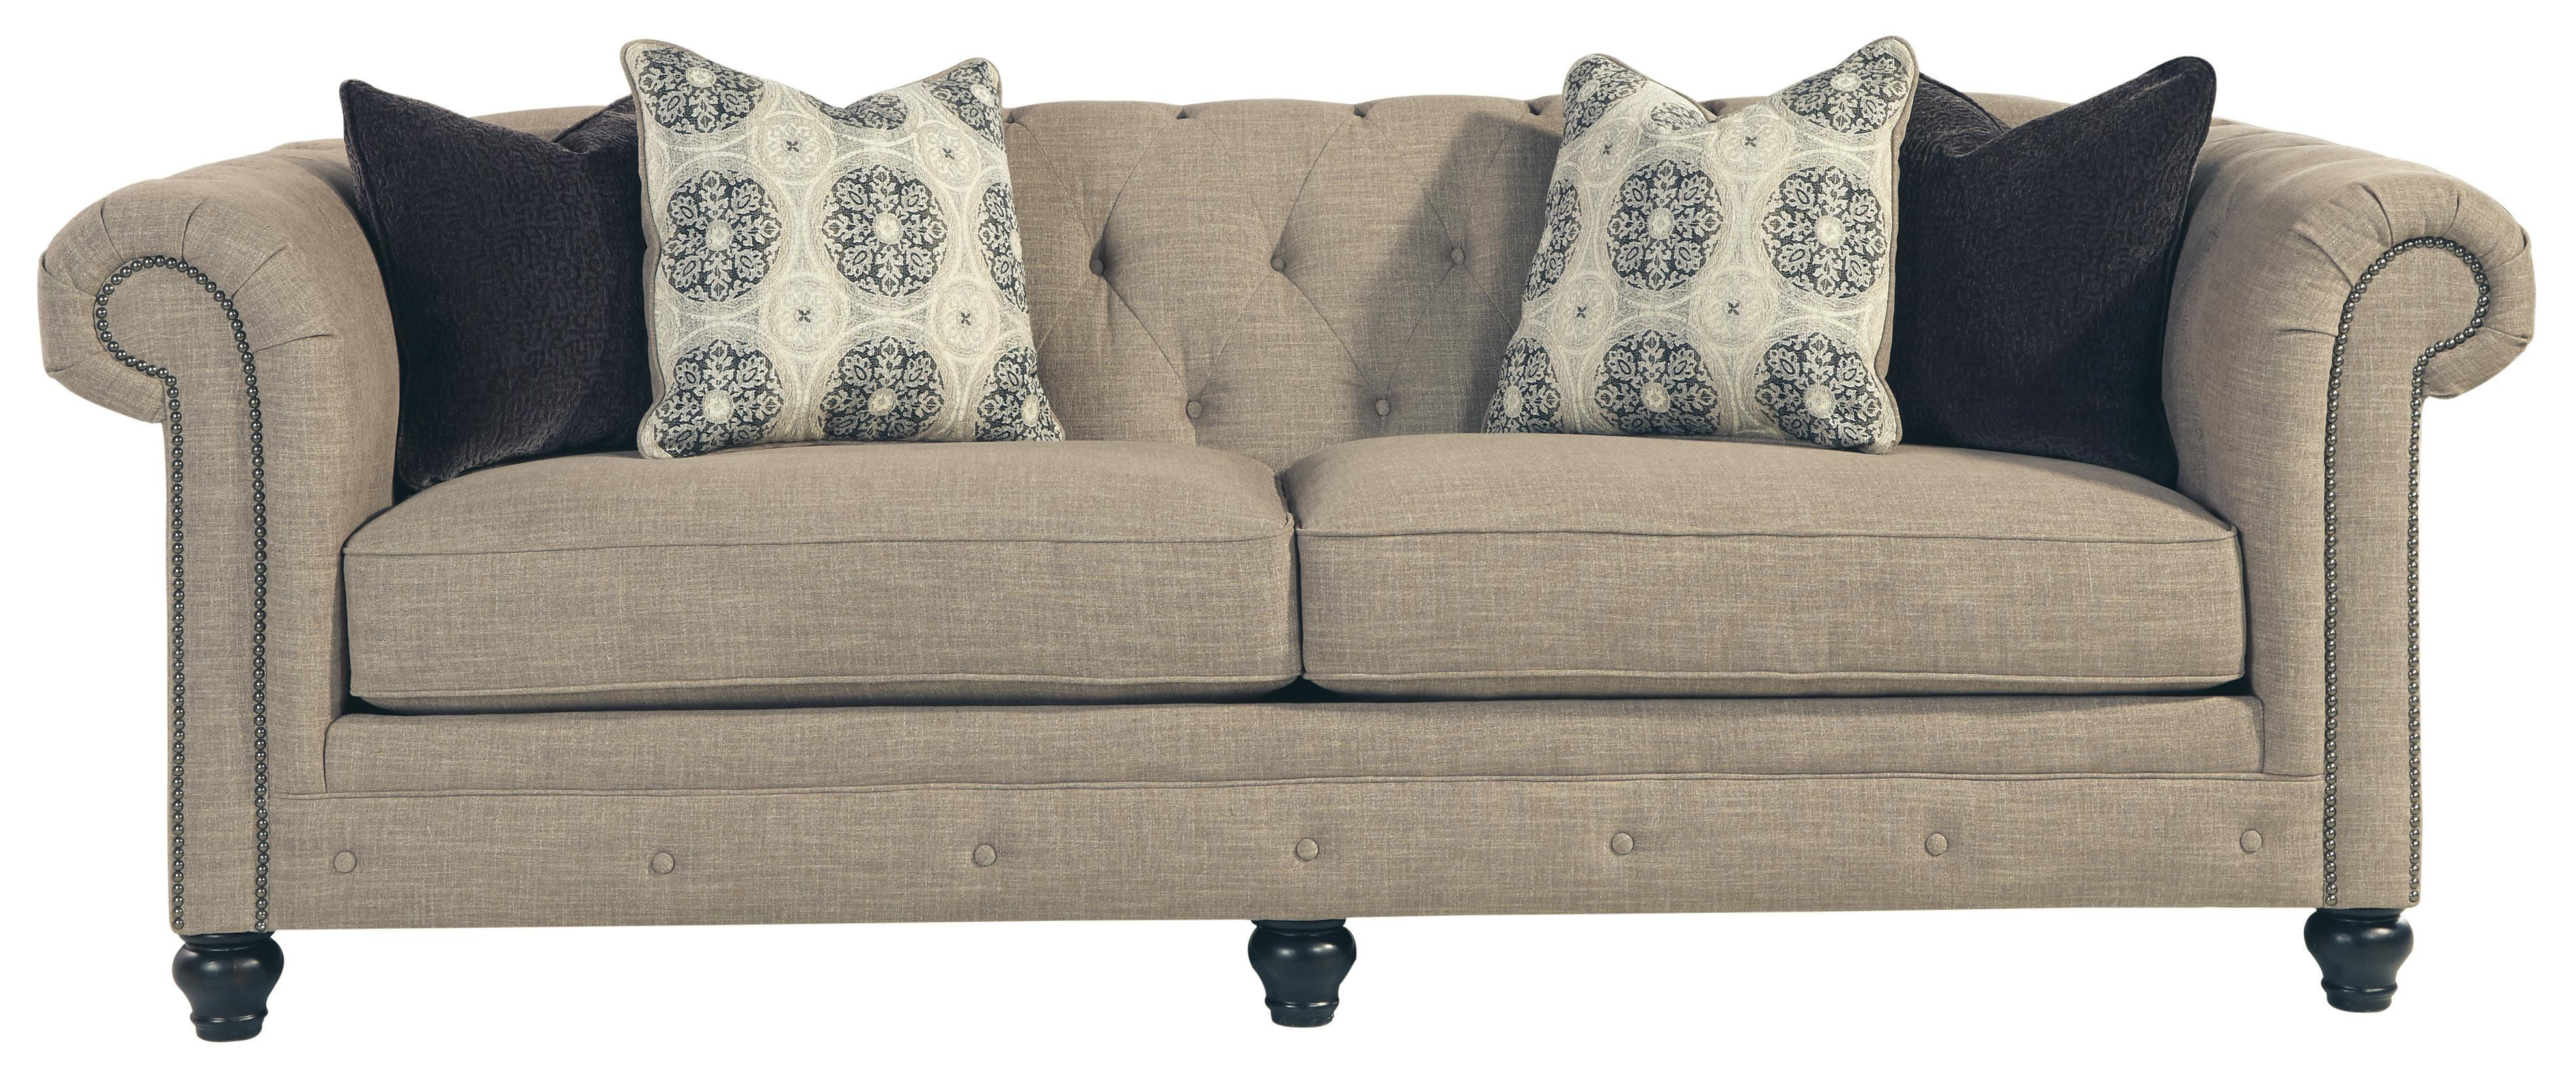 Transitional Chesterfield Sofa With Linen Blend Fabric For Colonial Sofas (View 15 of 20)